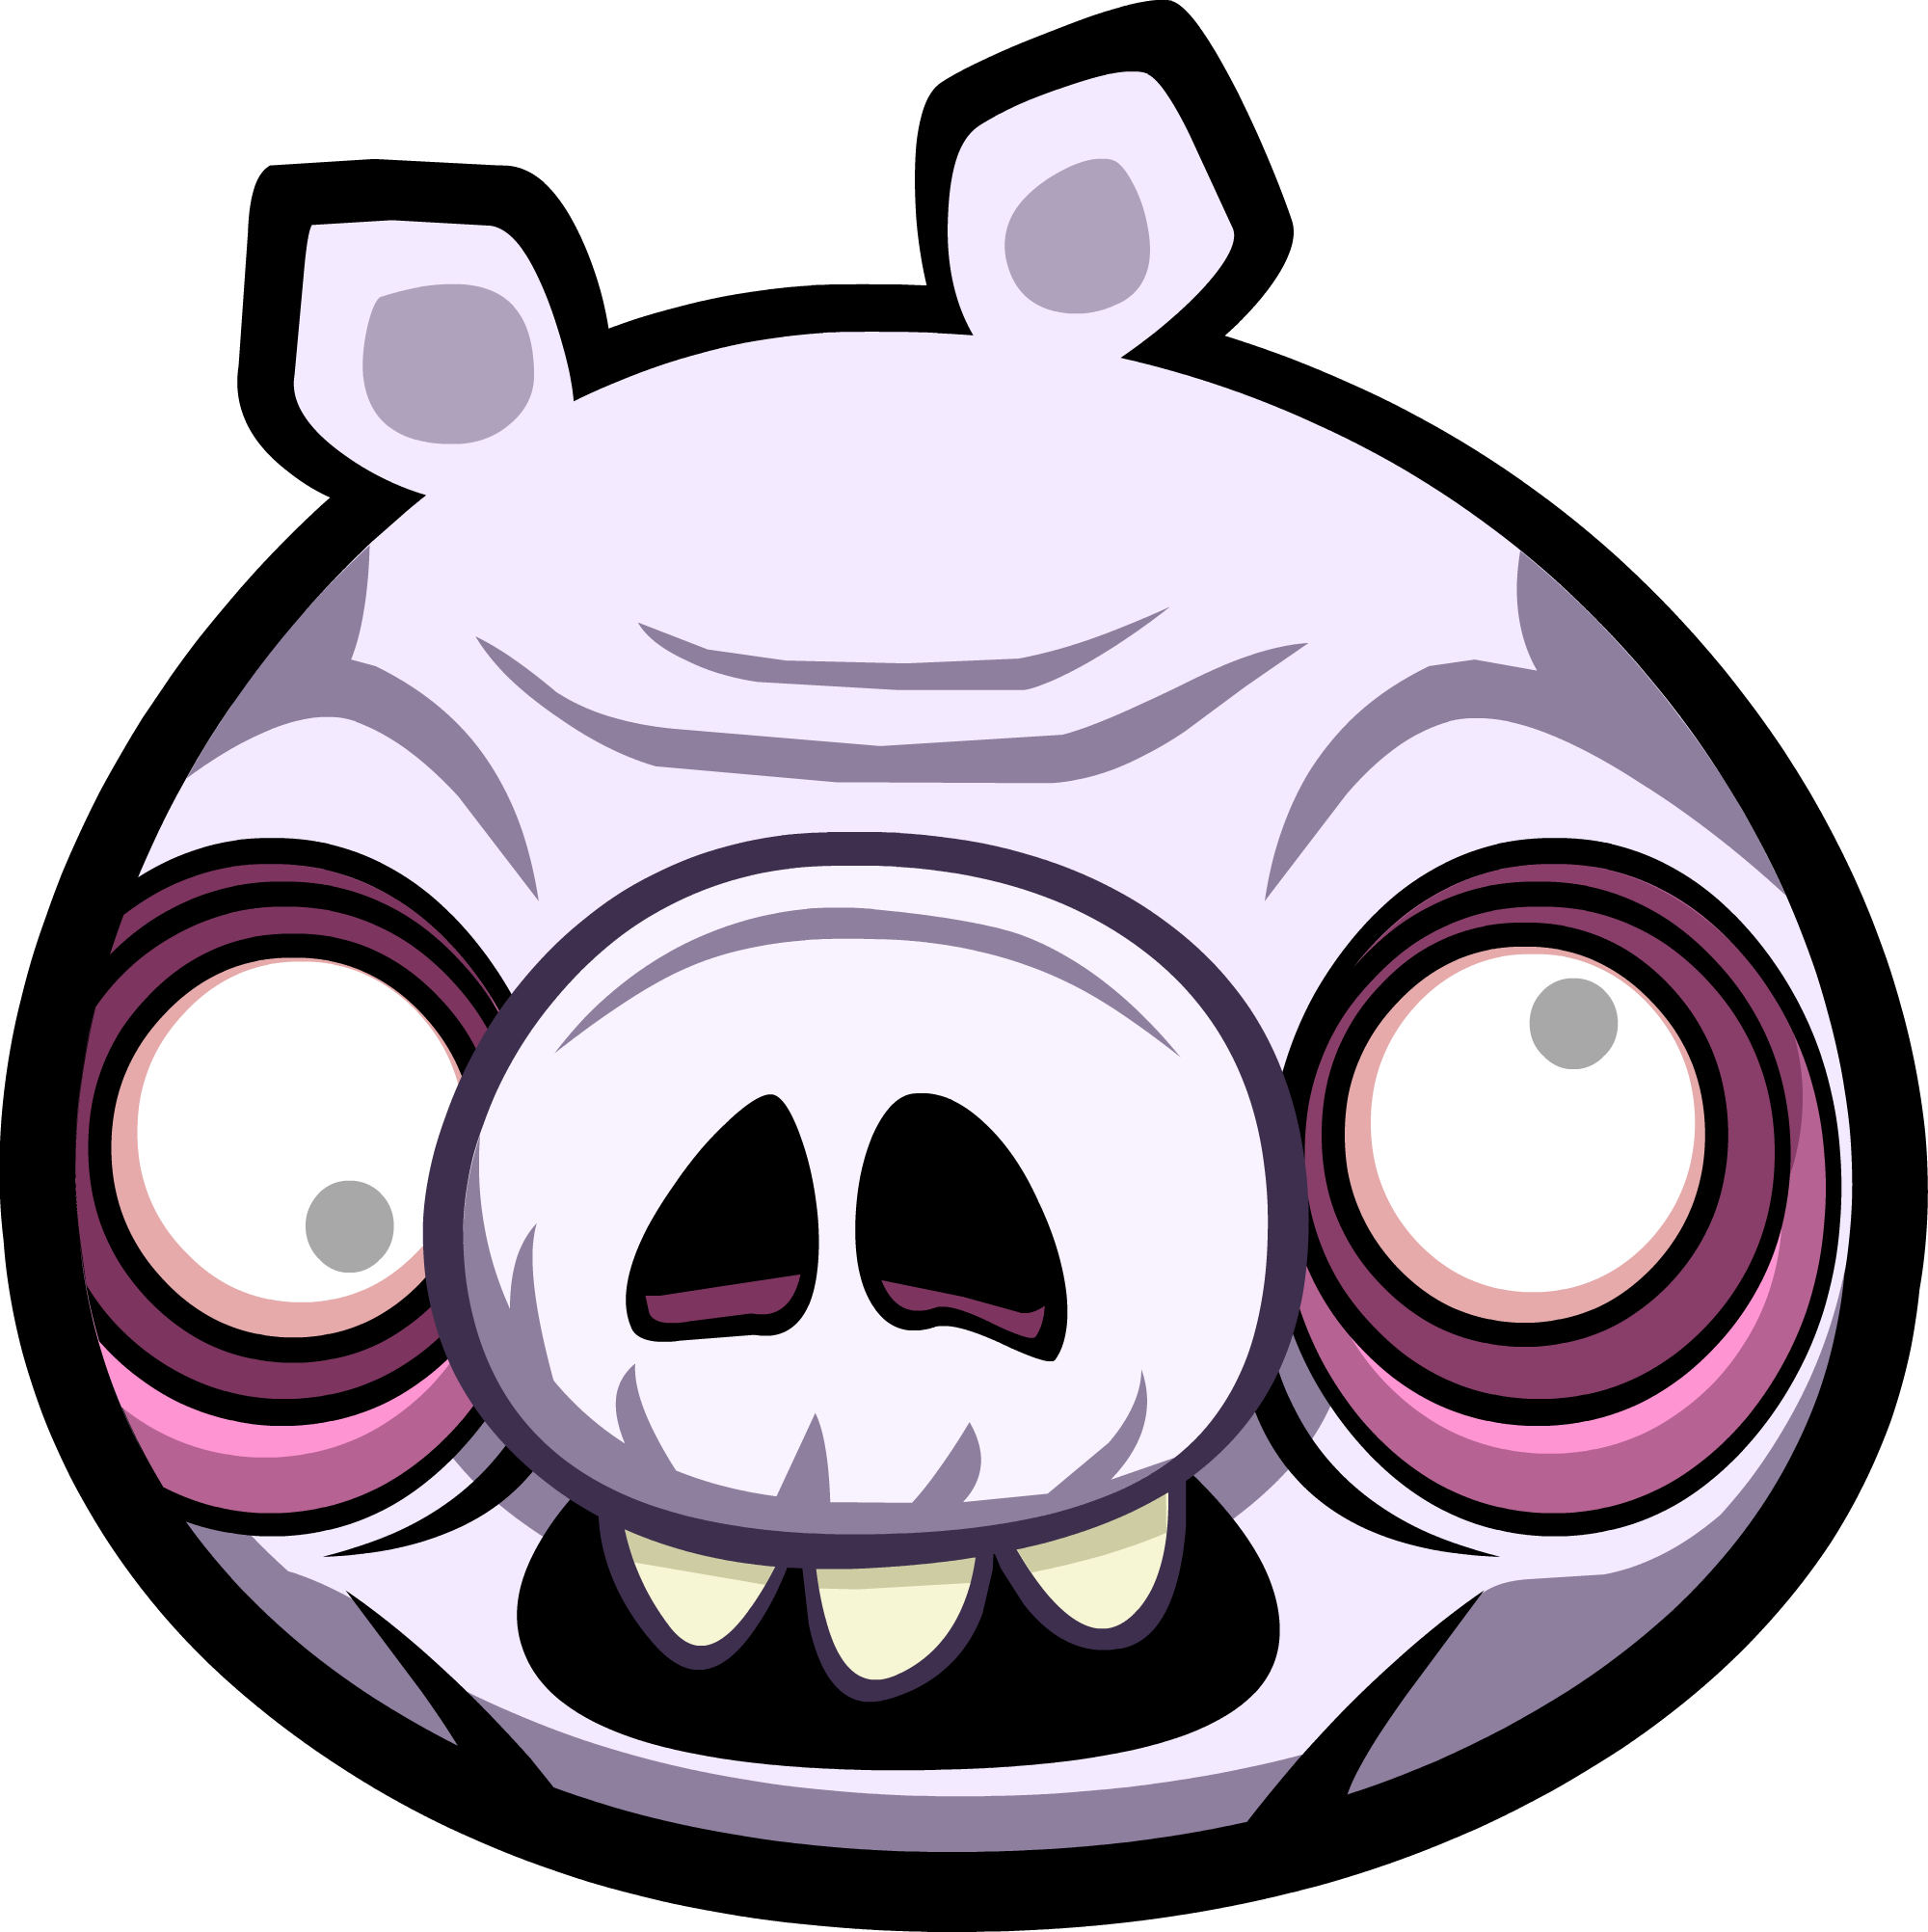 Spaceship clipart angry birds star wars. Image zombie pig png